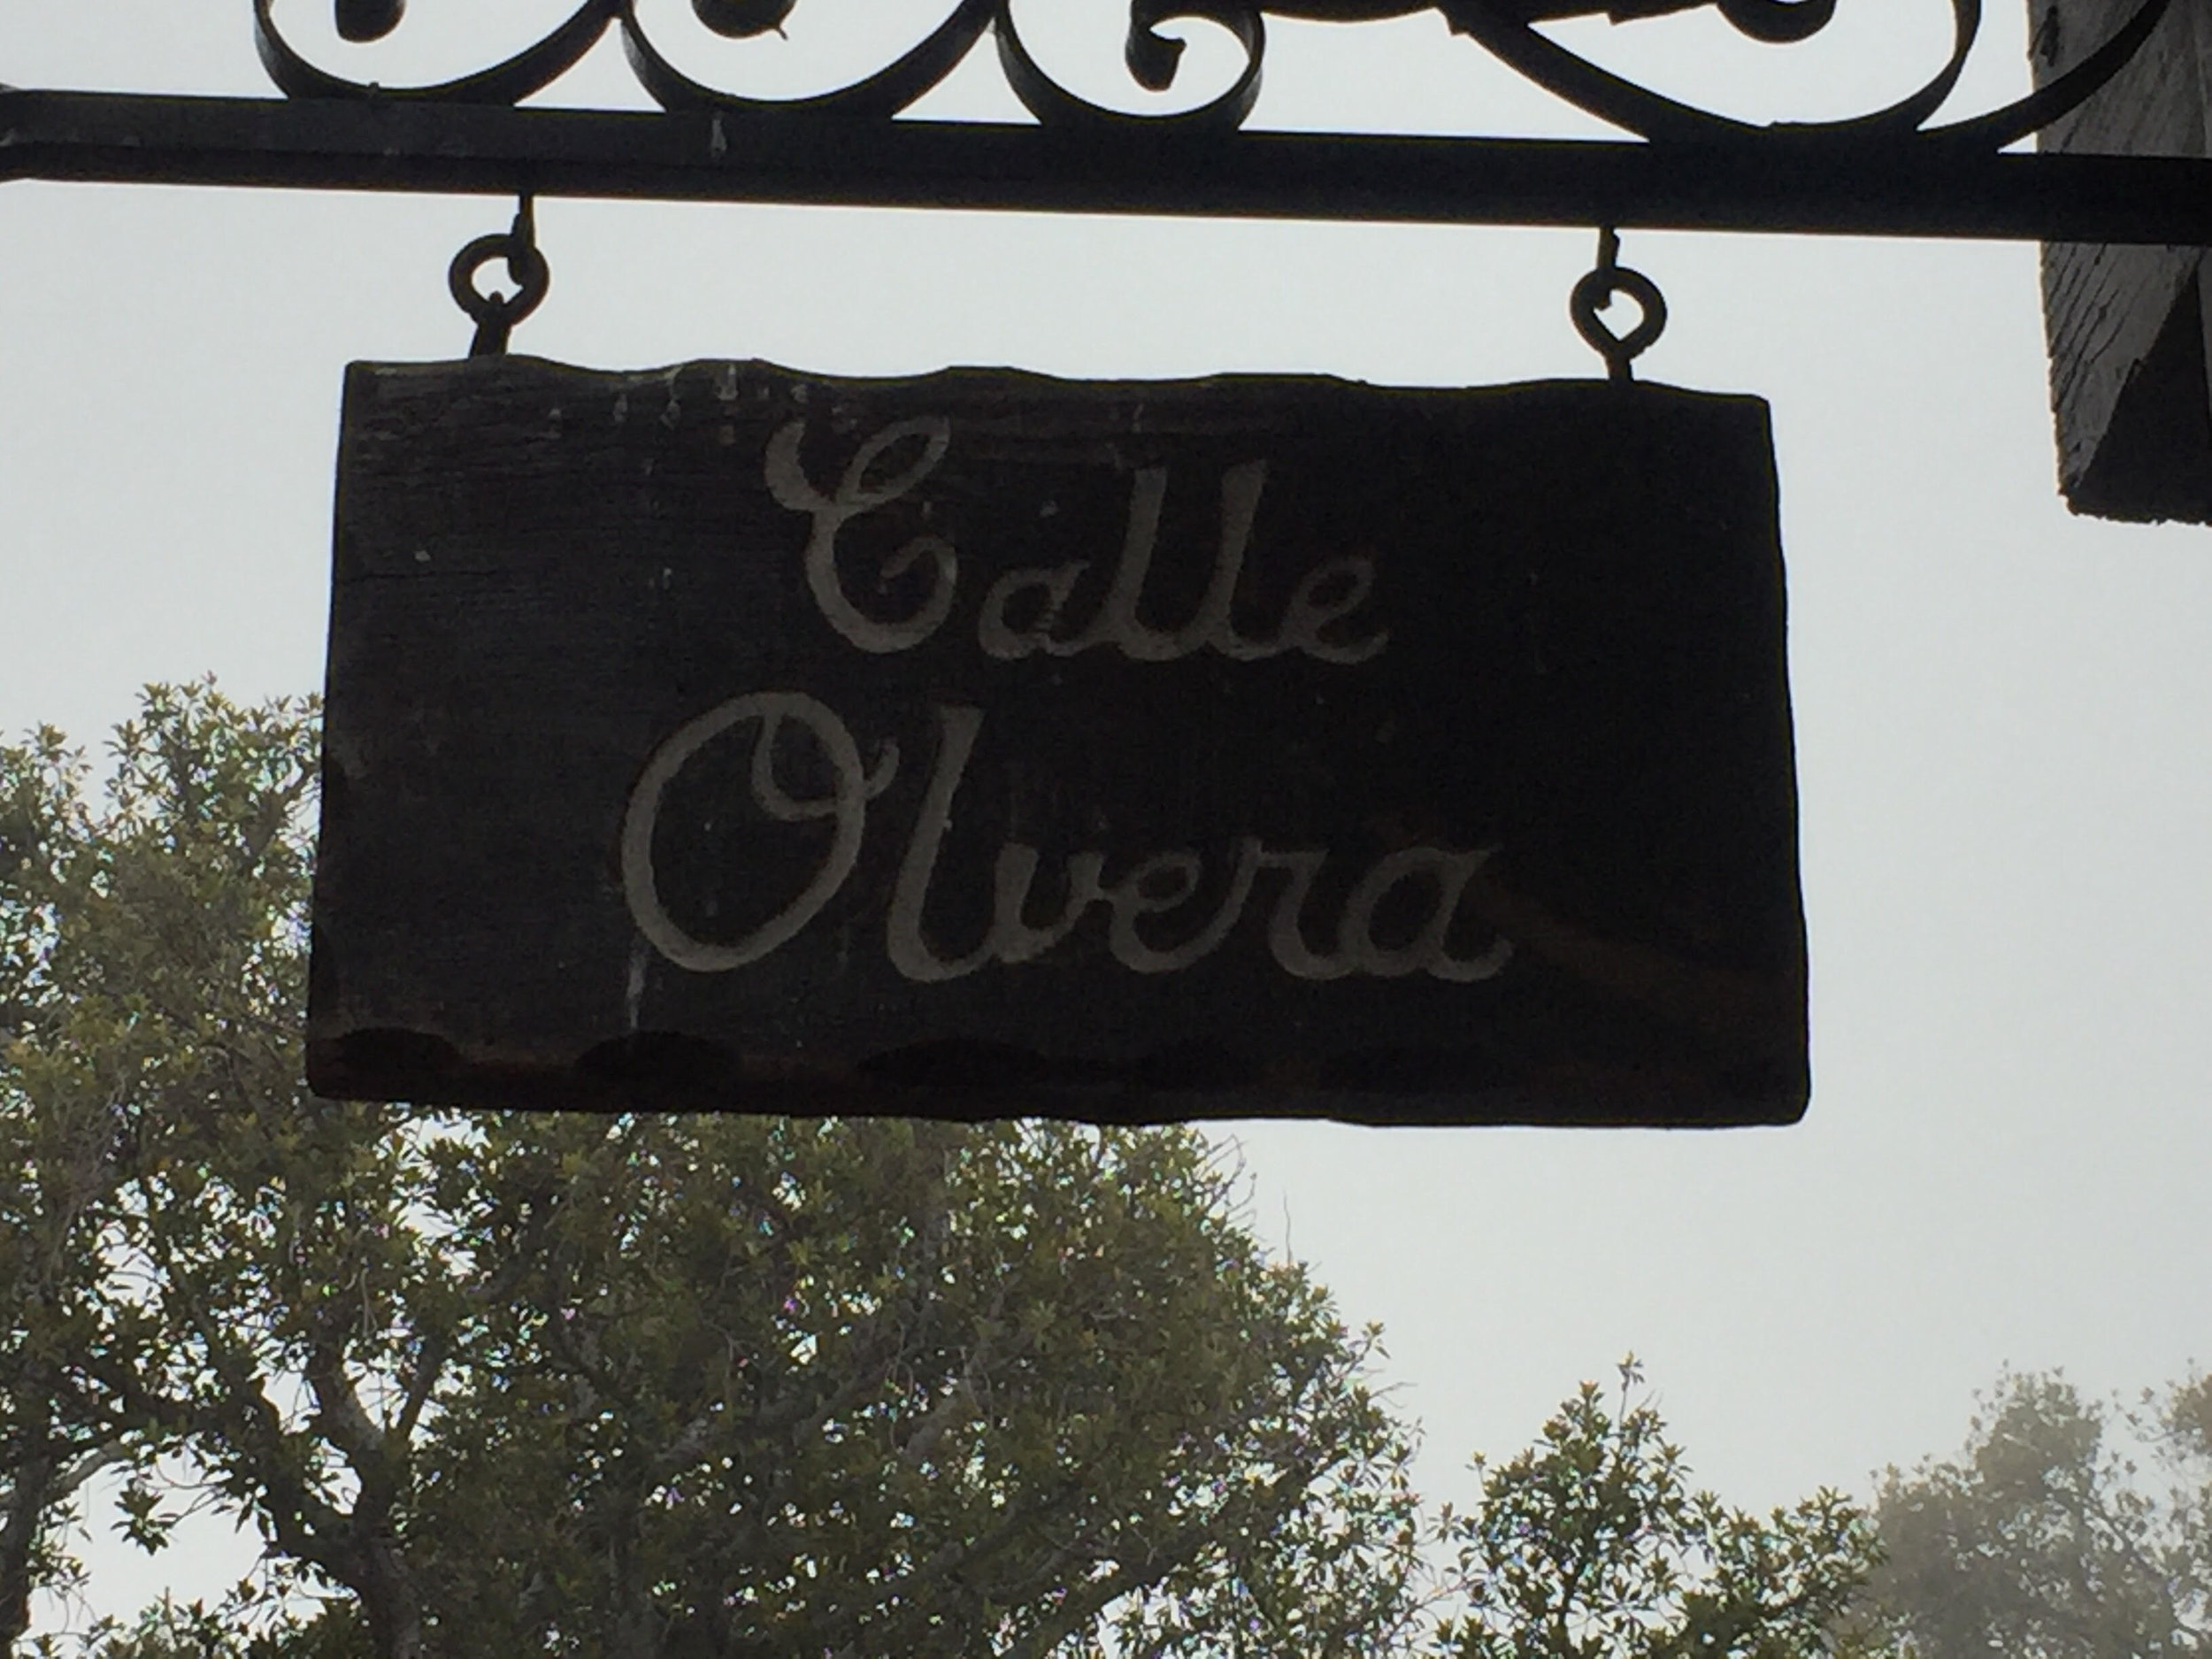 Olvera Street is one of the oldest streets in Los Angeles.